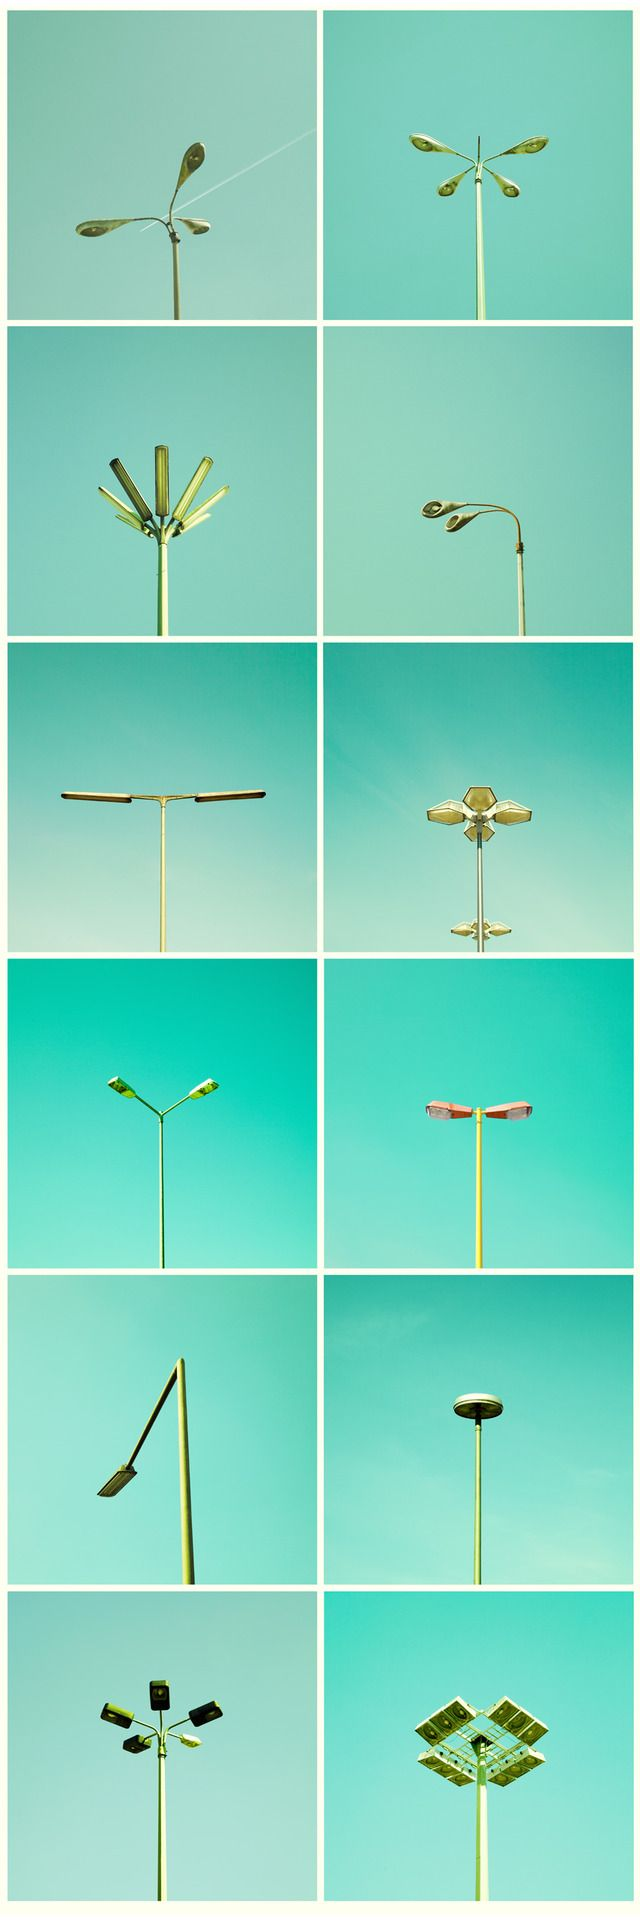 Streetlamp typology from matthiasheiderich